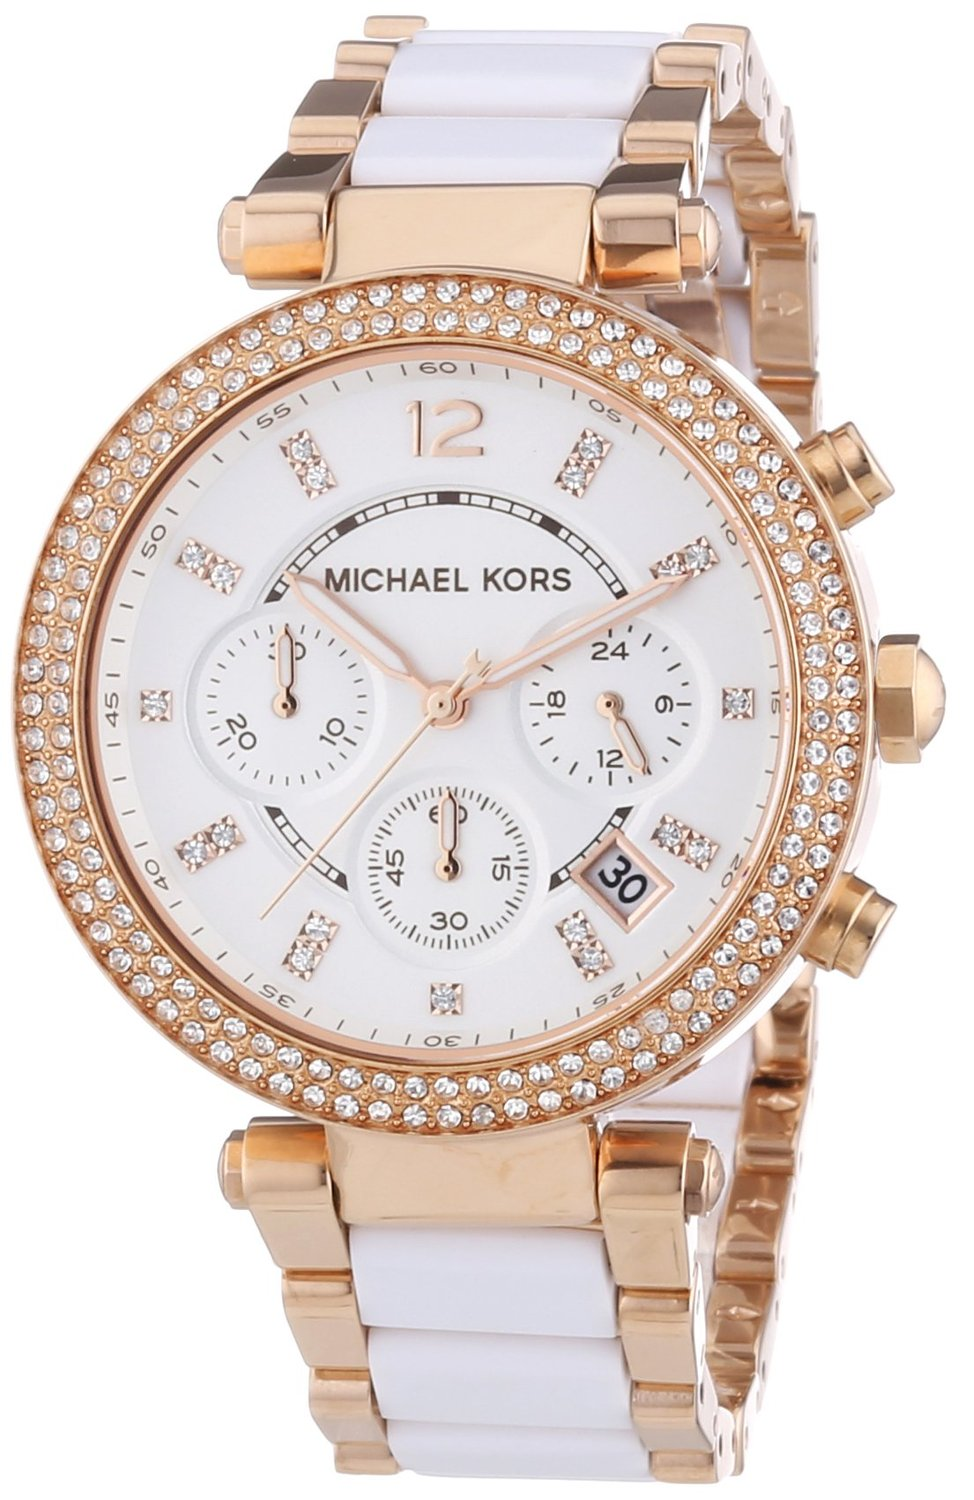 michael kors damen parker rosegold keramic chronograph designer armbanduhr ebay. Black Bedroom Furniture Sets. Home Design Ideas